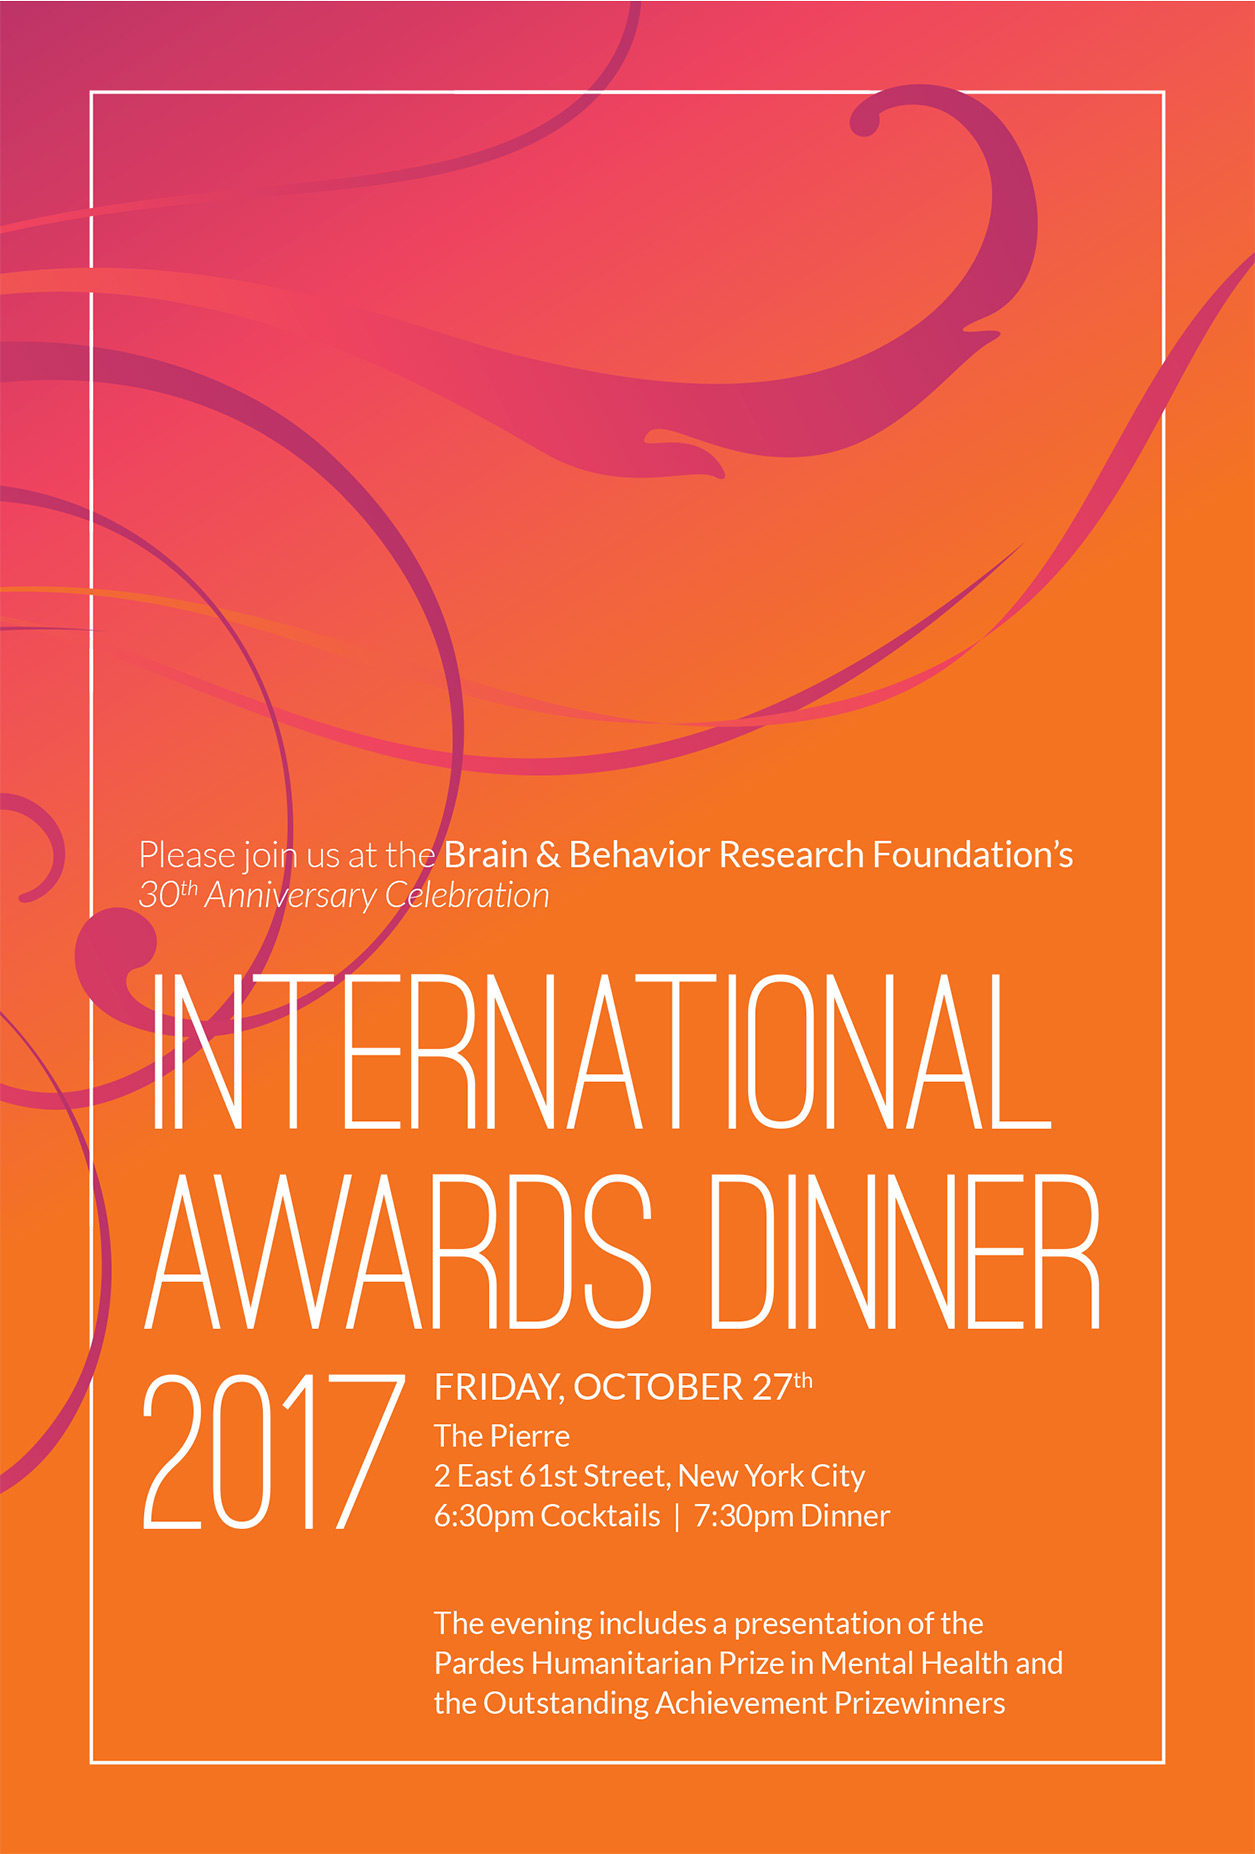 International Awards Dinner Journal Cover